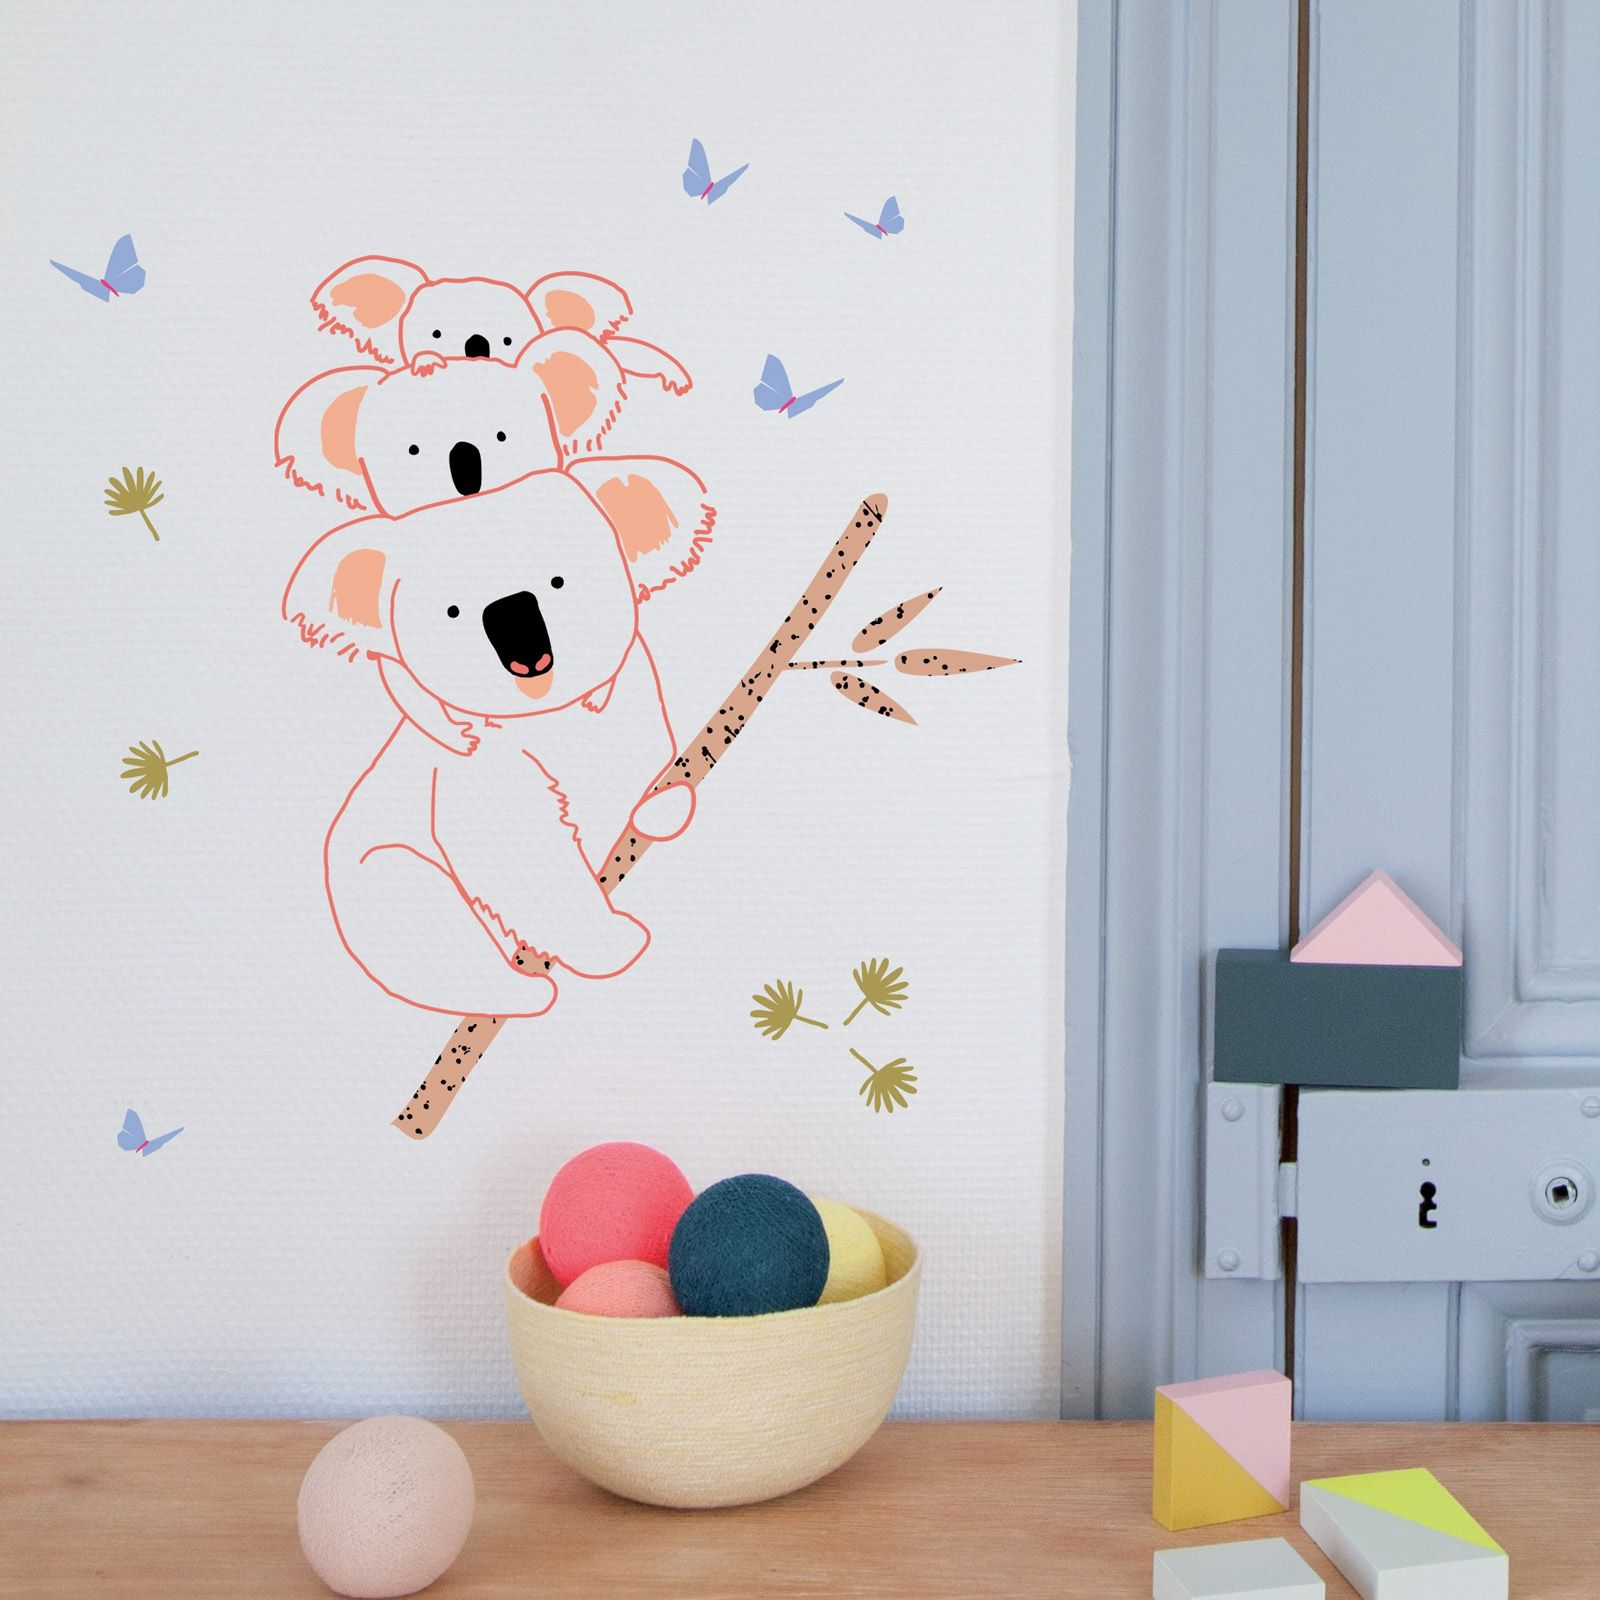 Sticker Mural Koala Family 40 X 37 Cm Stickers Muraux